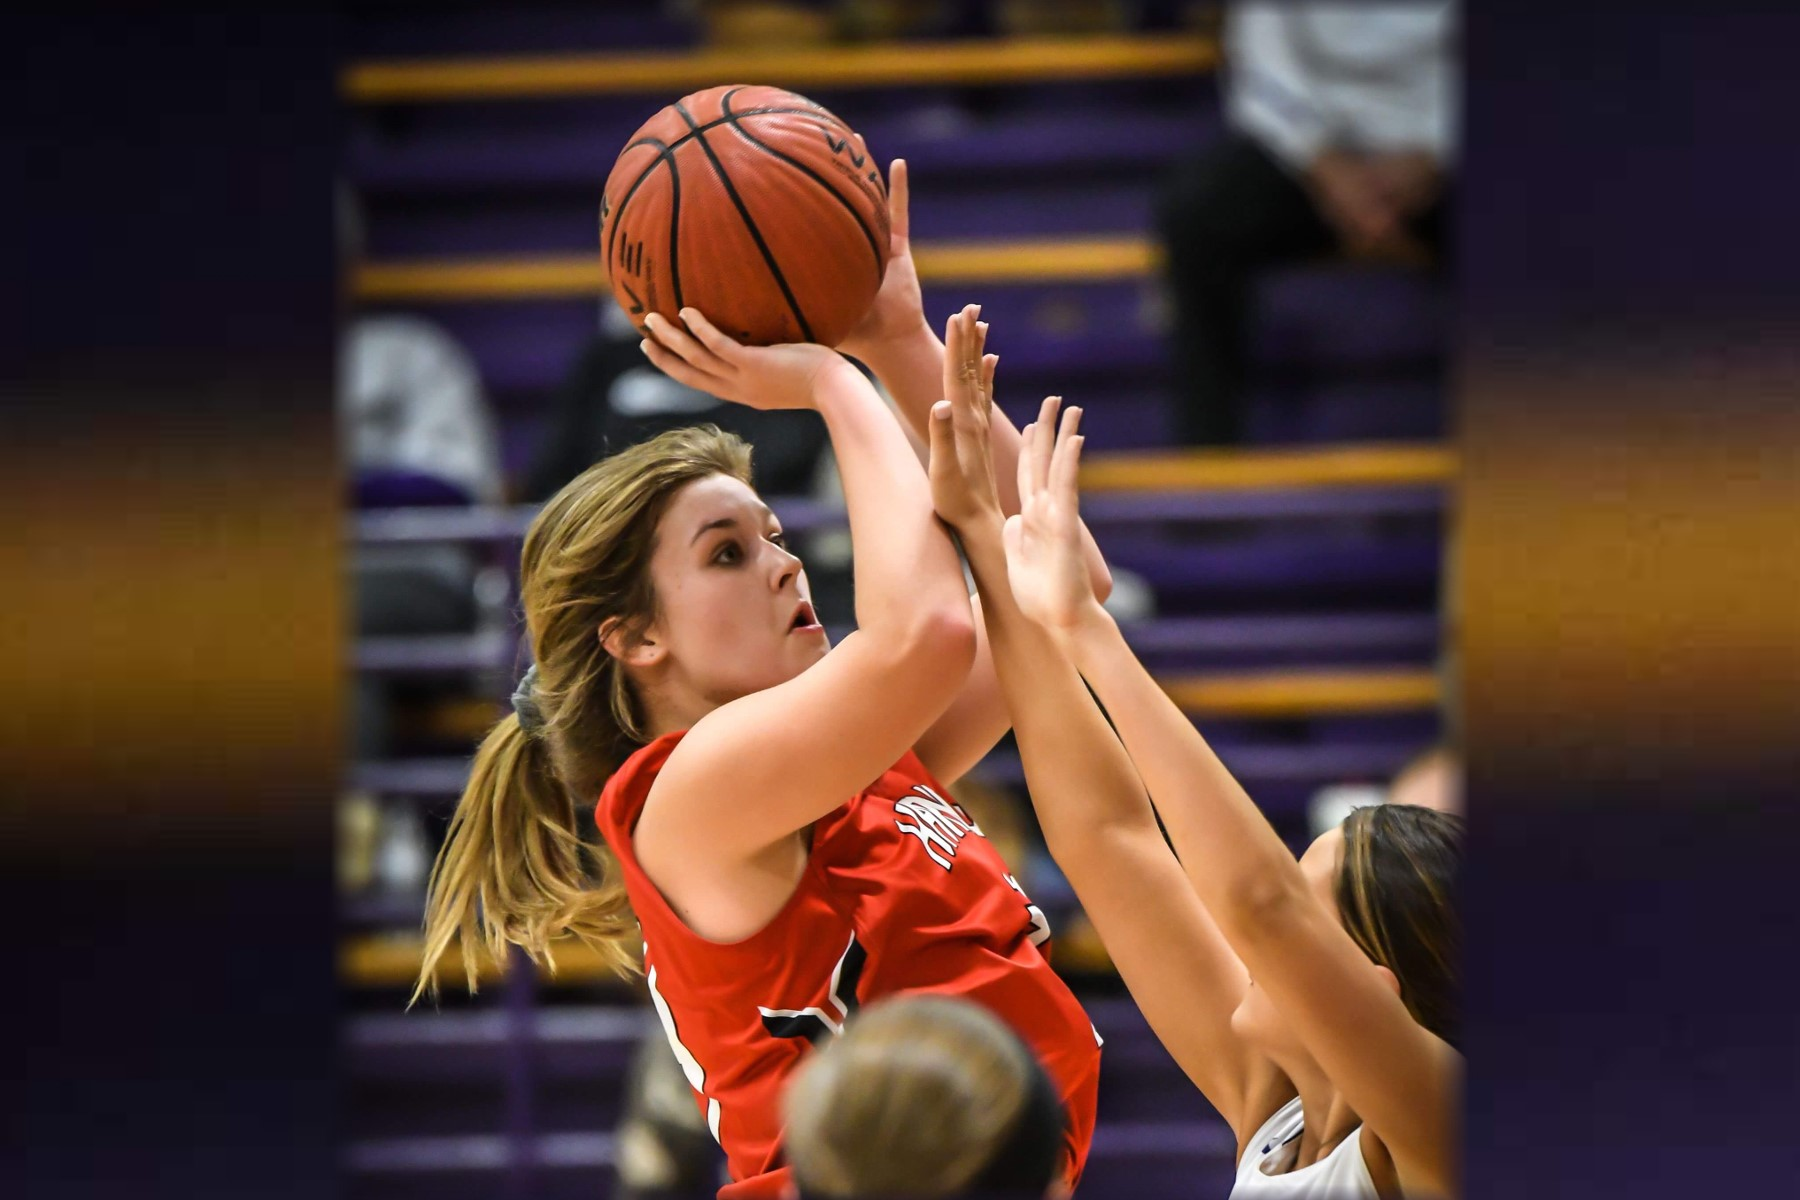 Withers awarded AAA All-State honors